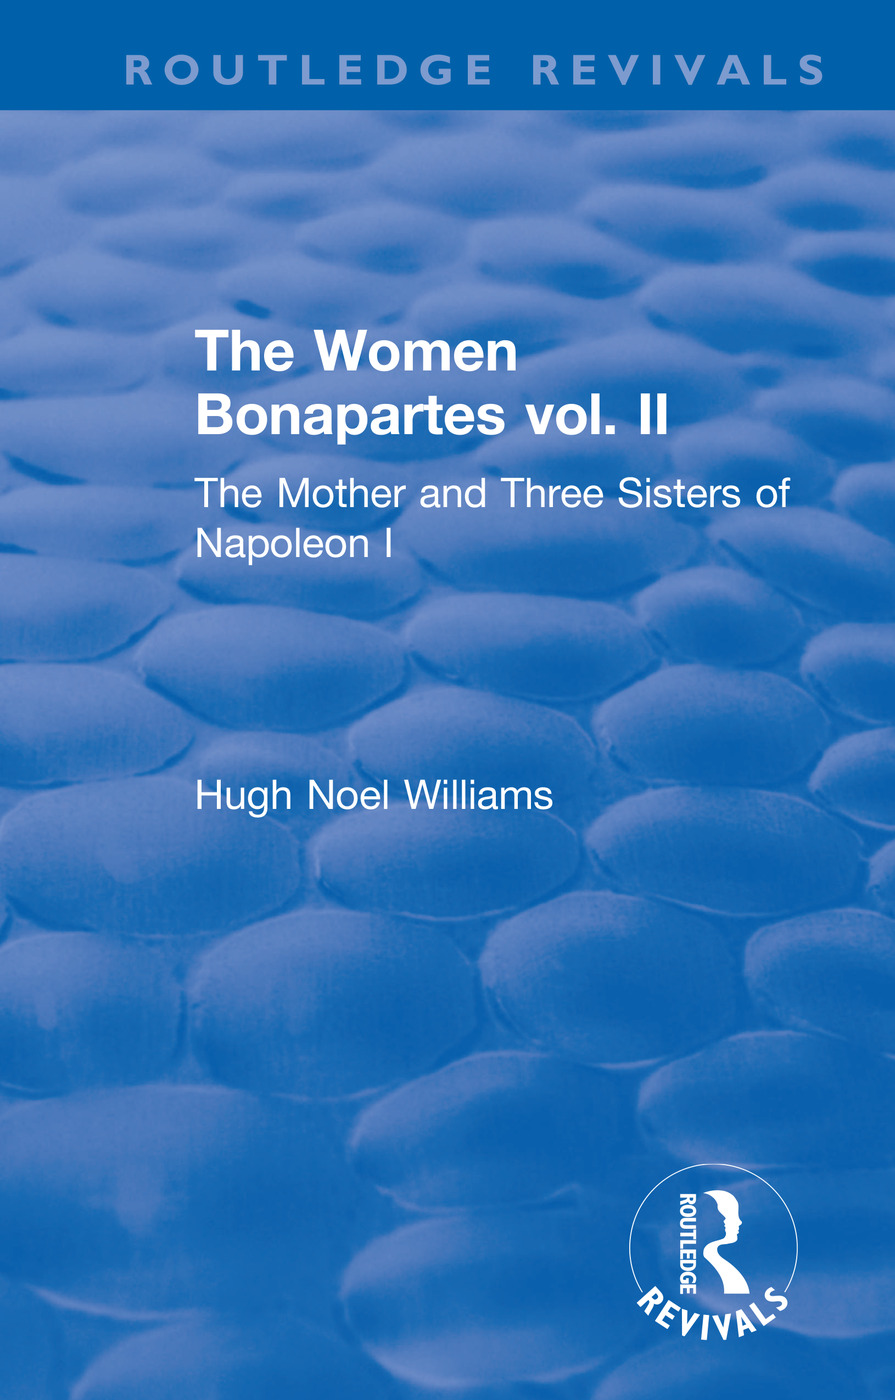 Revival: The Women Bonapartes vol. II (1908): The Mother and Three Sisters of Napoleon I book cover